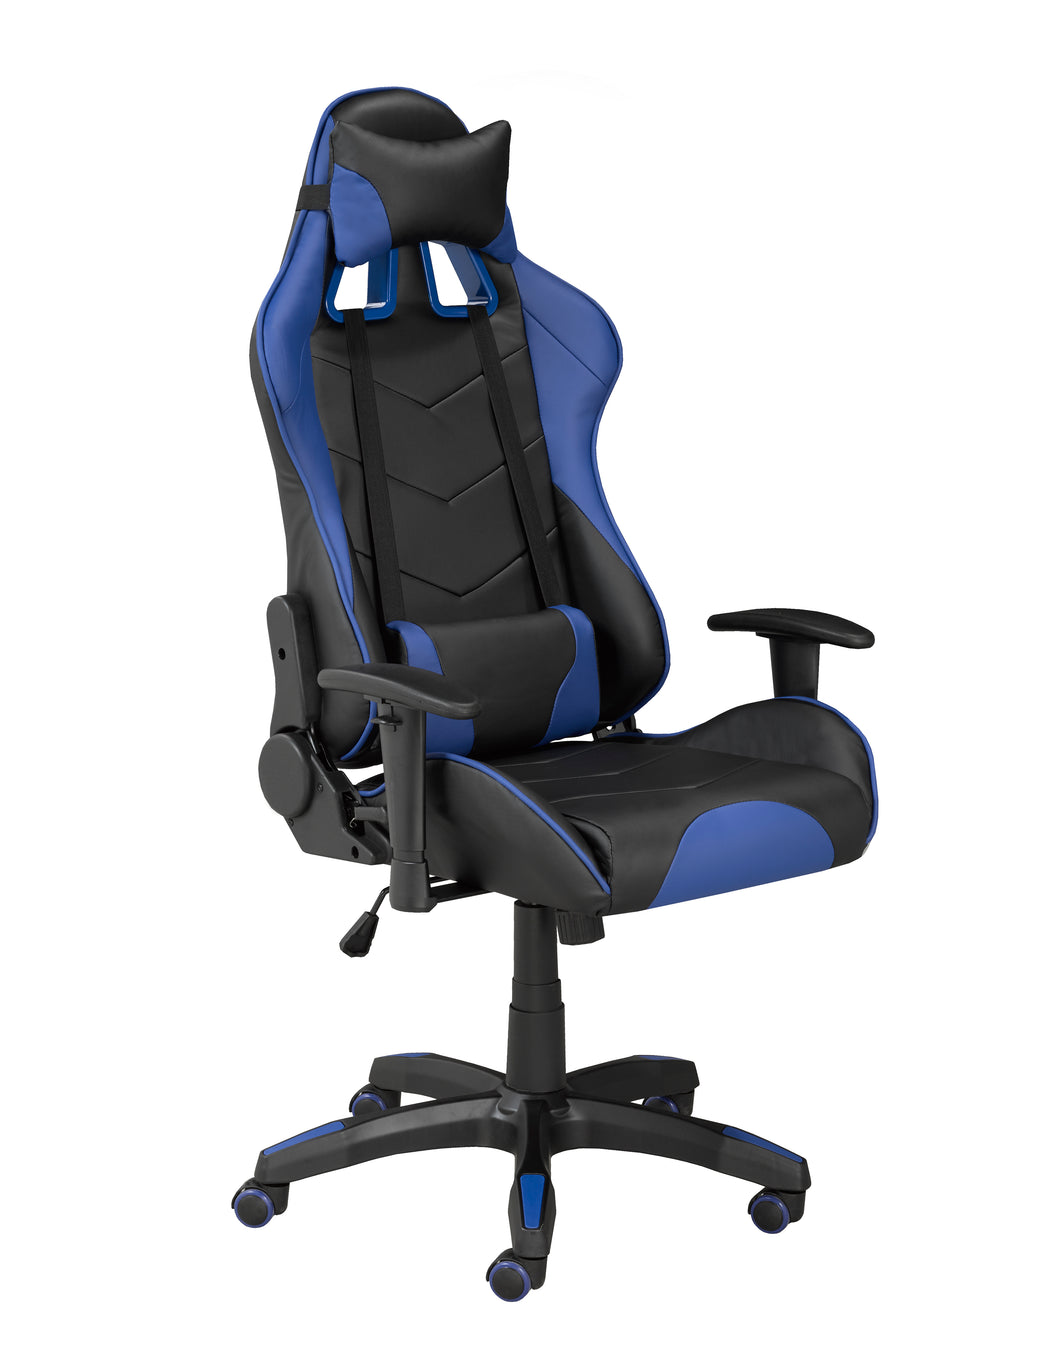 Sorrento Gaming Chair w/ Tilt - Blue | Candace and Basil Furniture